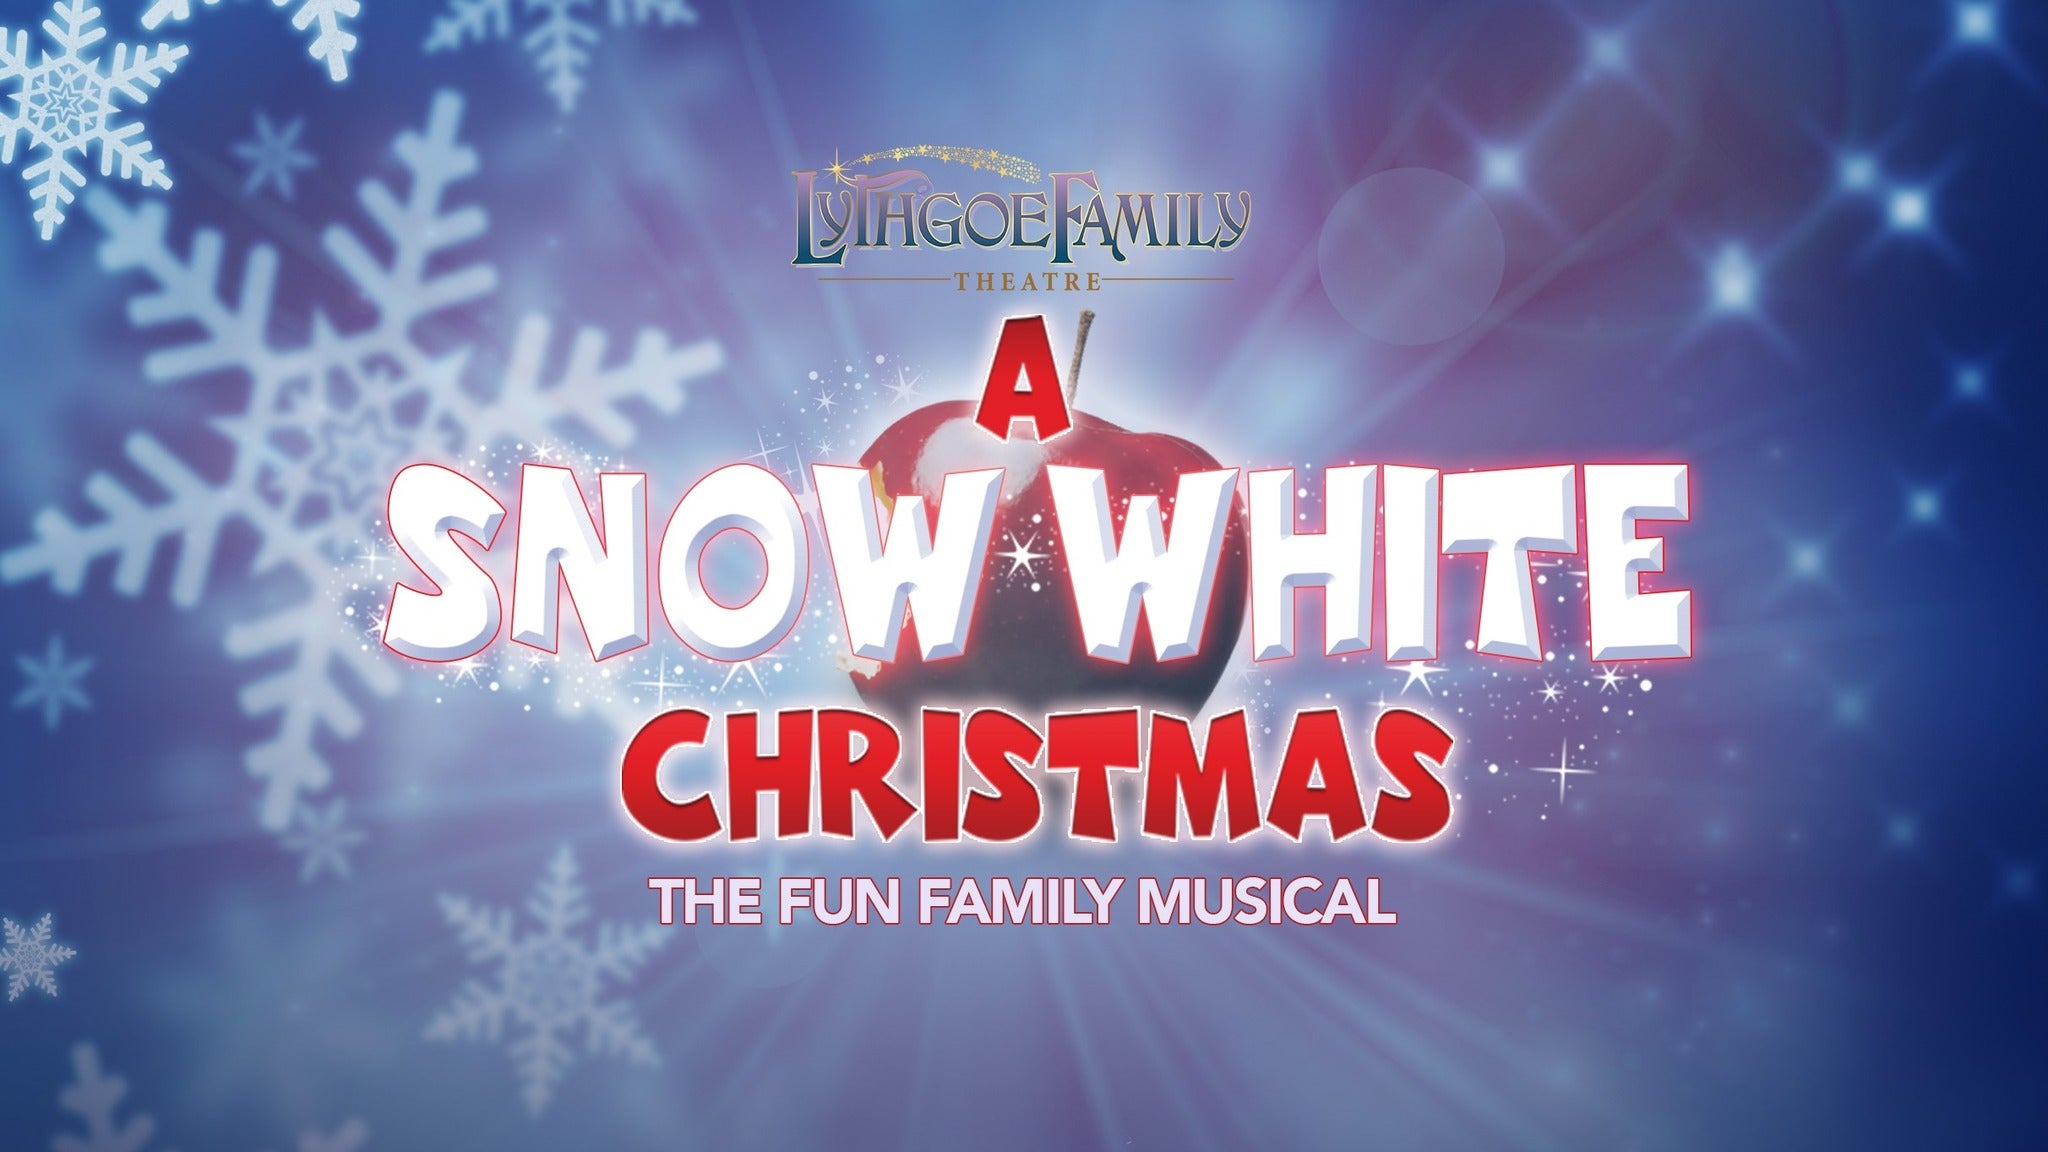 A Snow White Christmas.Lythgoe Family Panto S A Snow White Christmas Discover Los